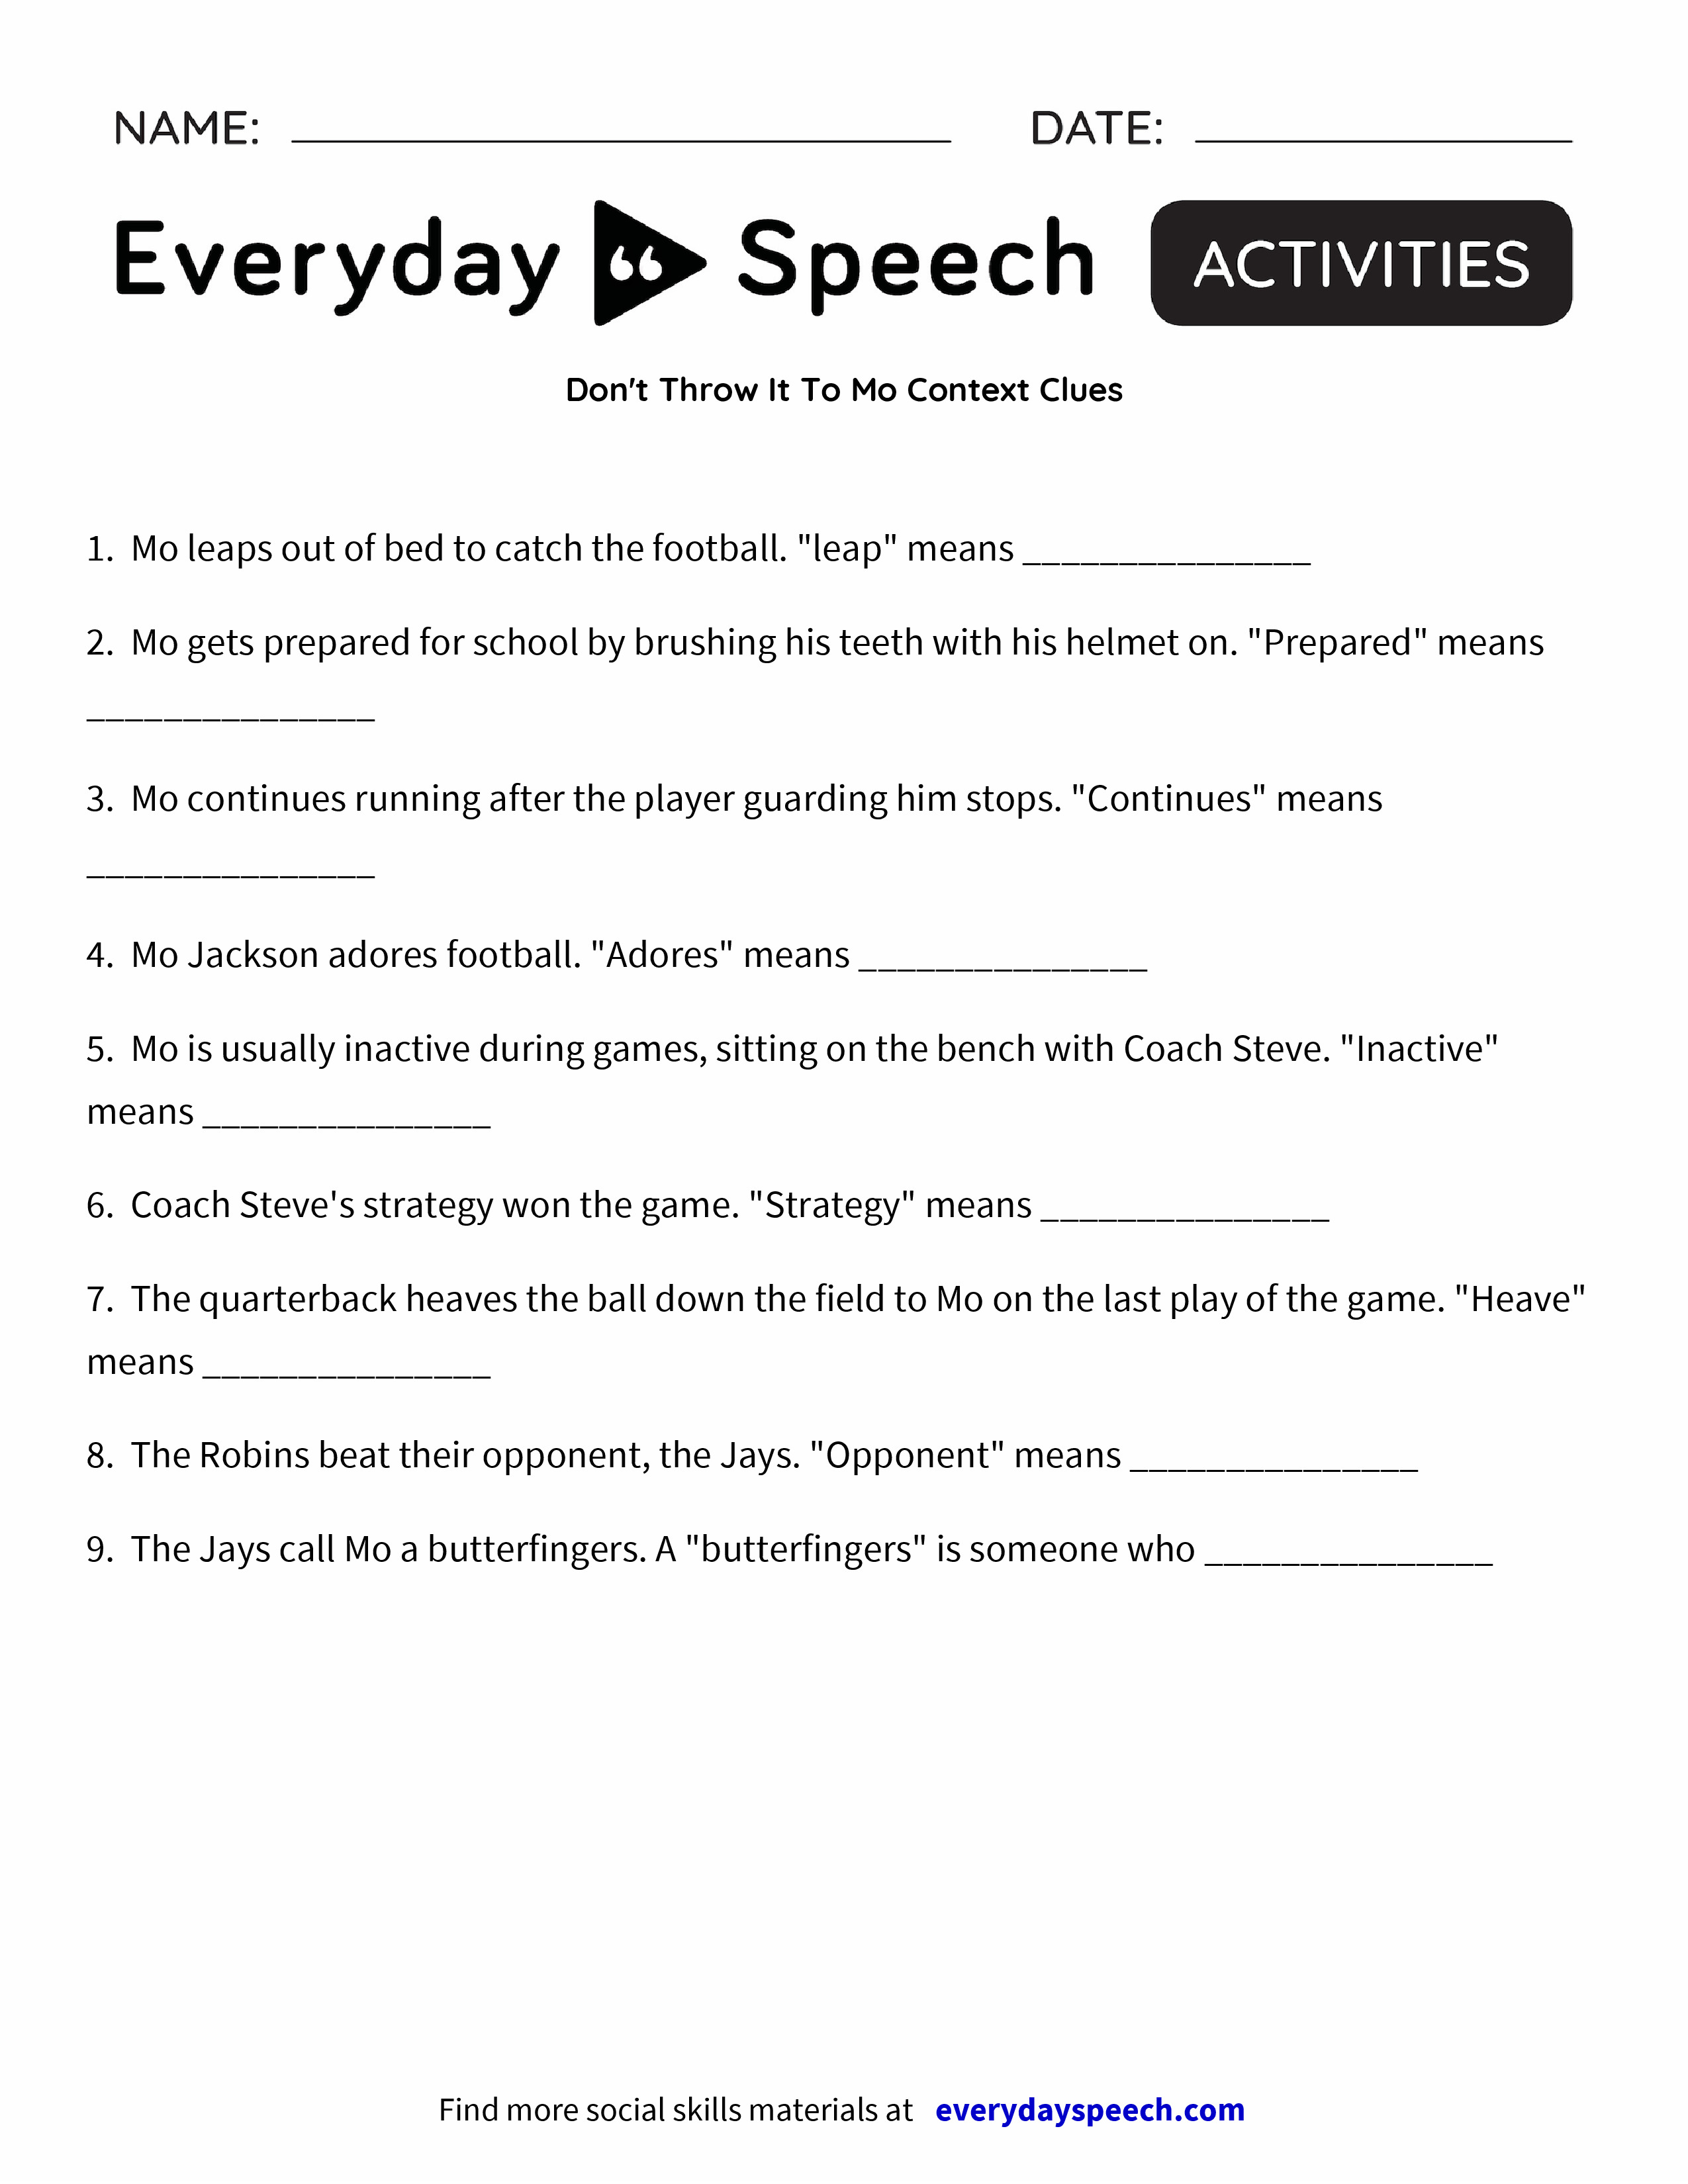 Don't Throw It To Mo Context Clues - Everyday Speech